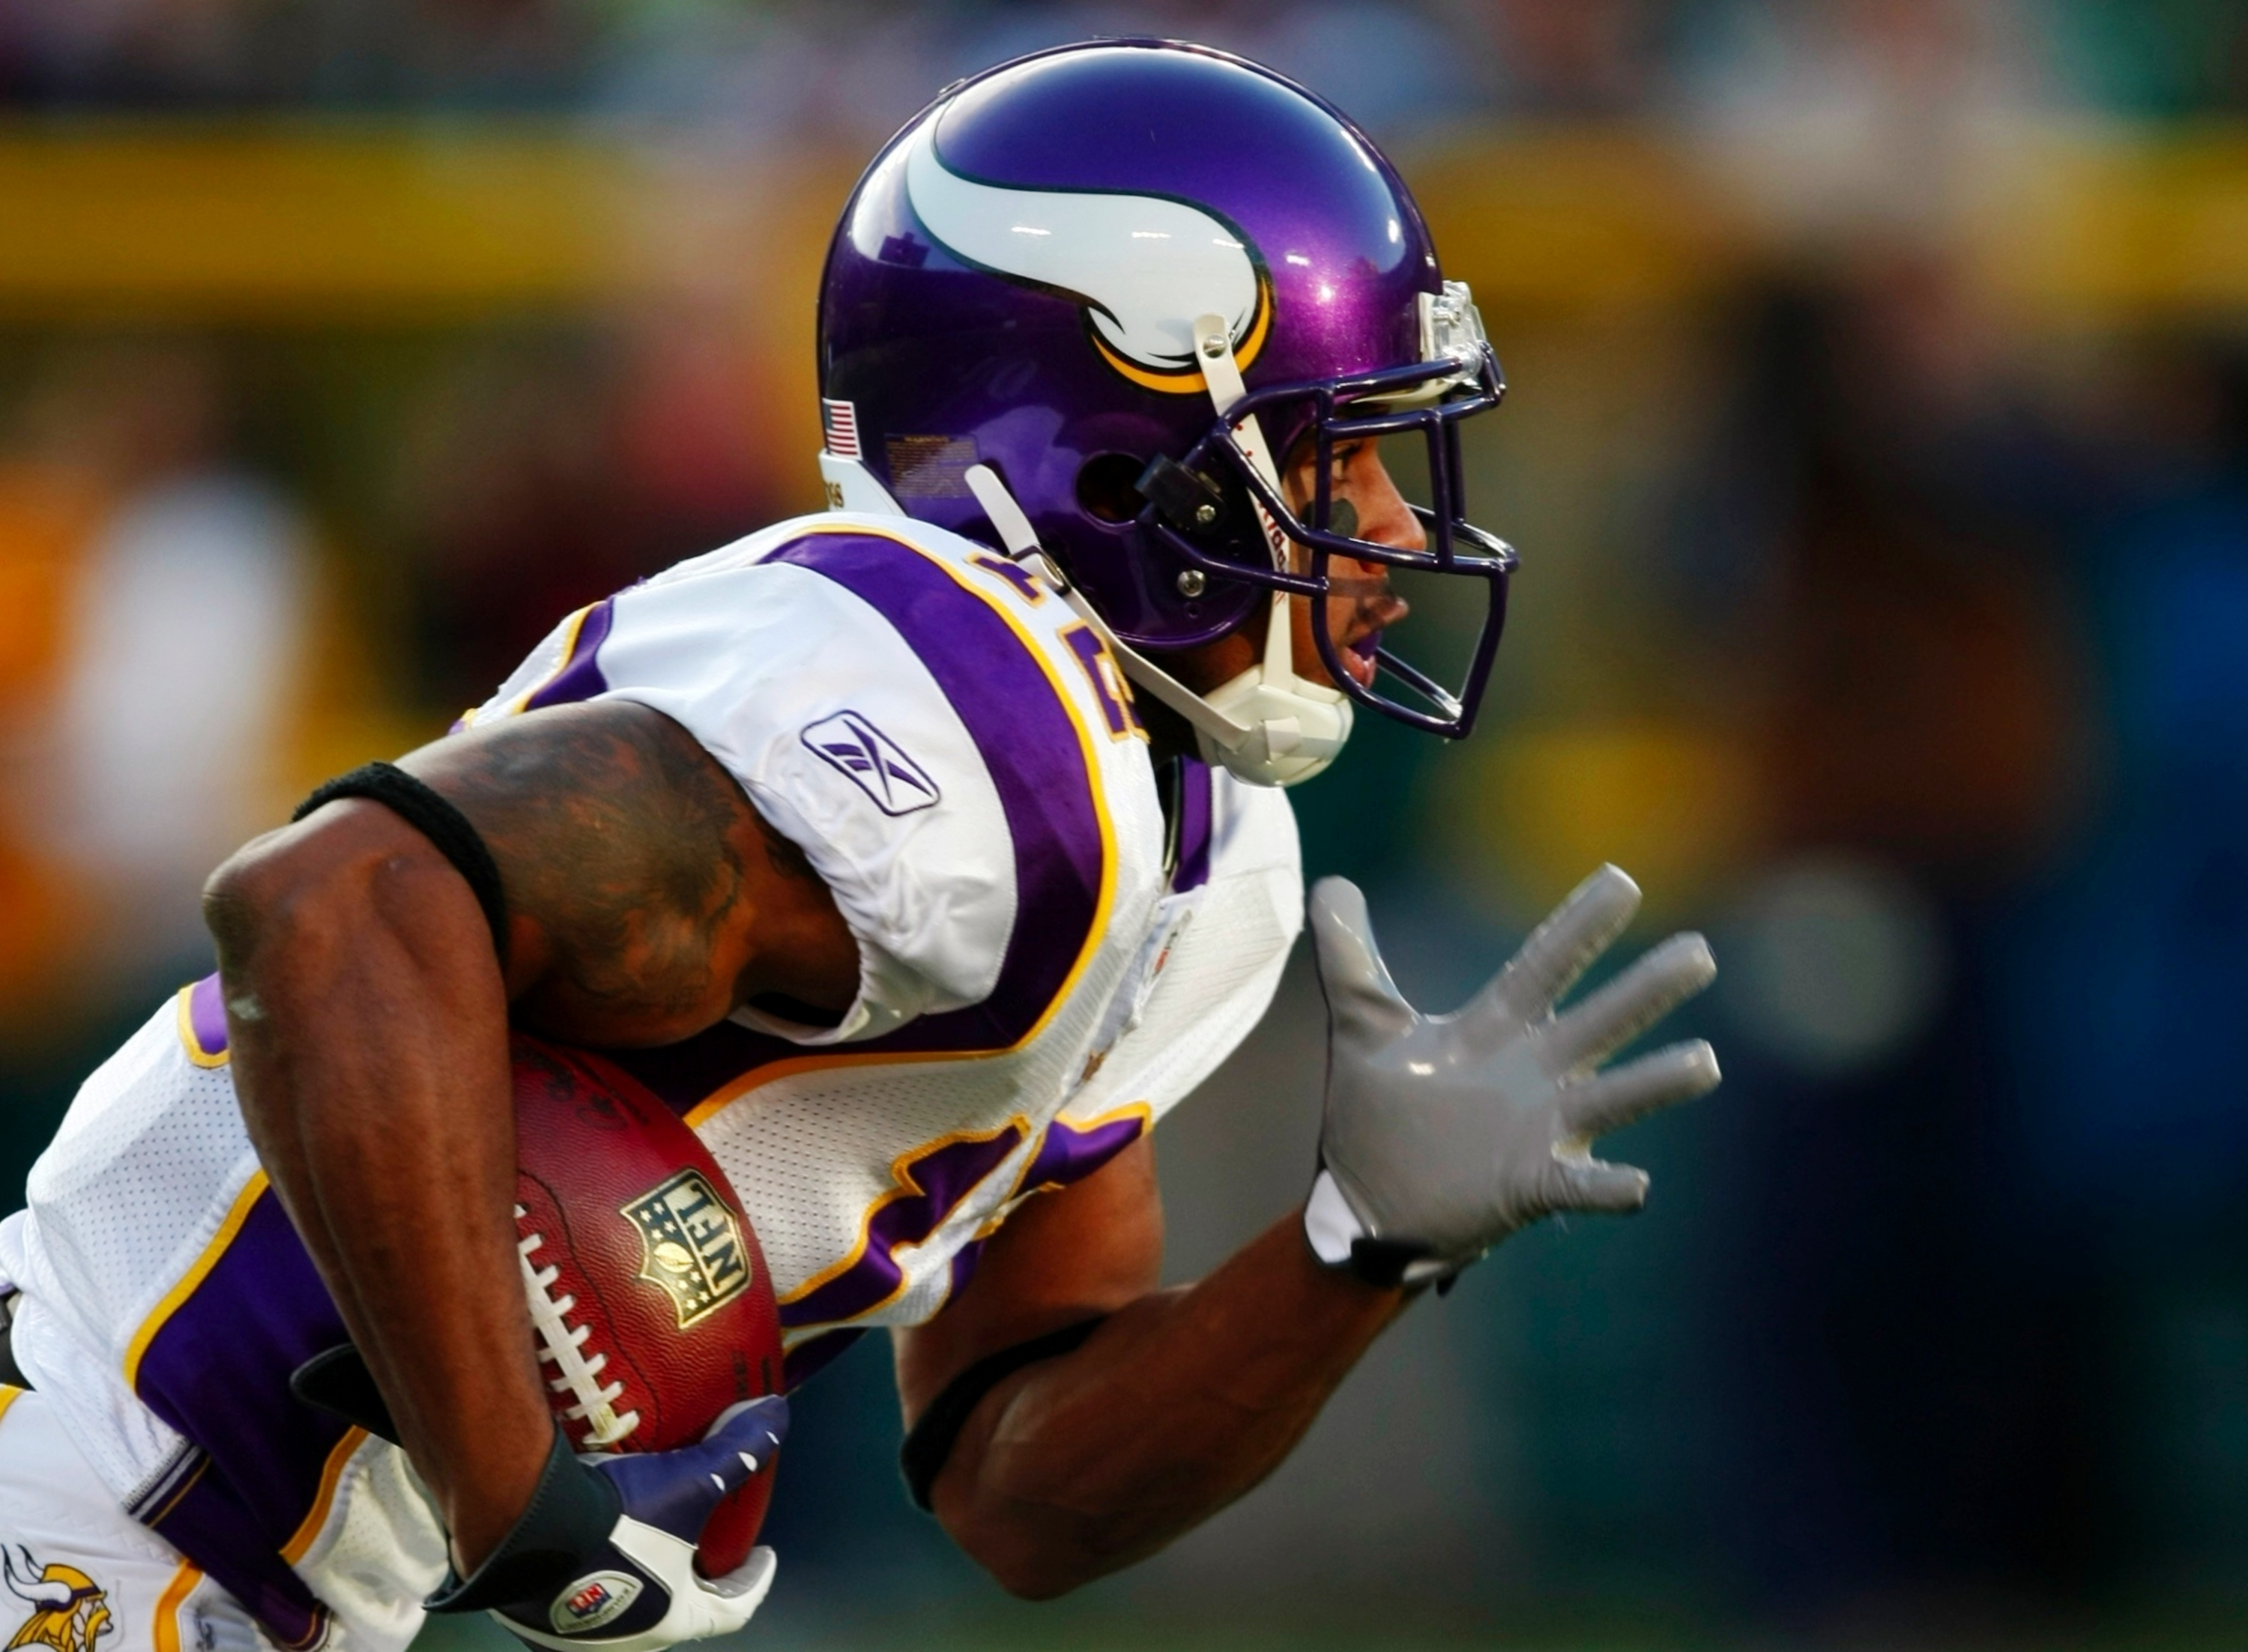 GREEN BAY, WI - NOVEMBER 01: Wide receiver Percy Harvin #12 of the Minnesota Vikings runs with the ball during the first quarter of the game against the Green Bay Packers at Lambeau Field on November 1, 2009 in Green Bay, Wisconsin. (Photo by Scott Boehm/